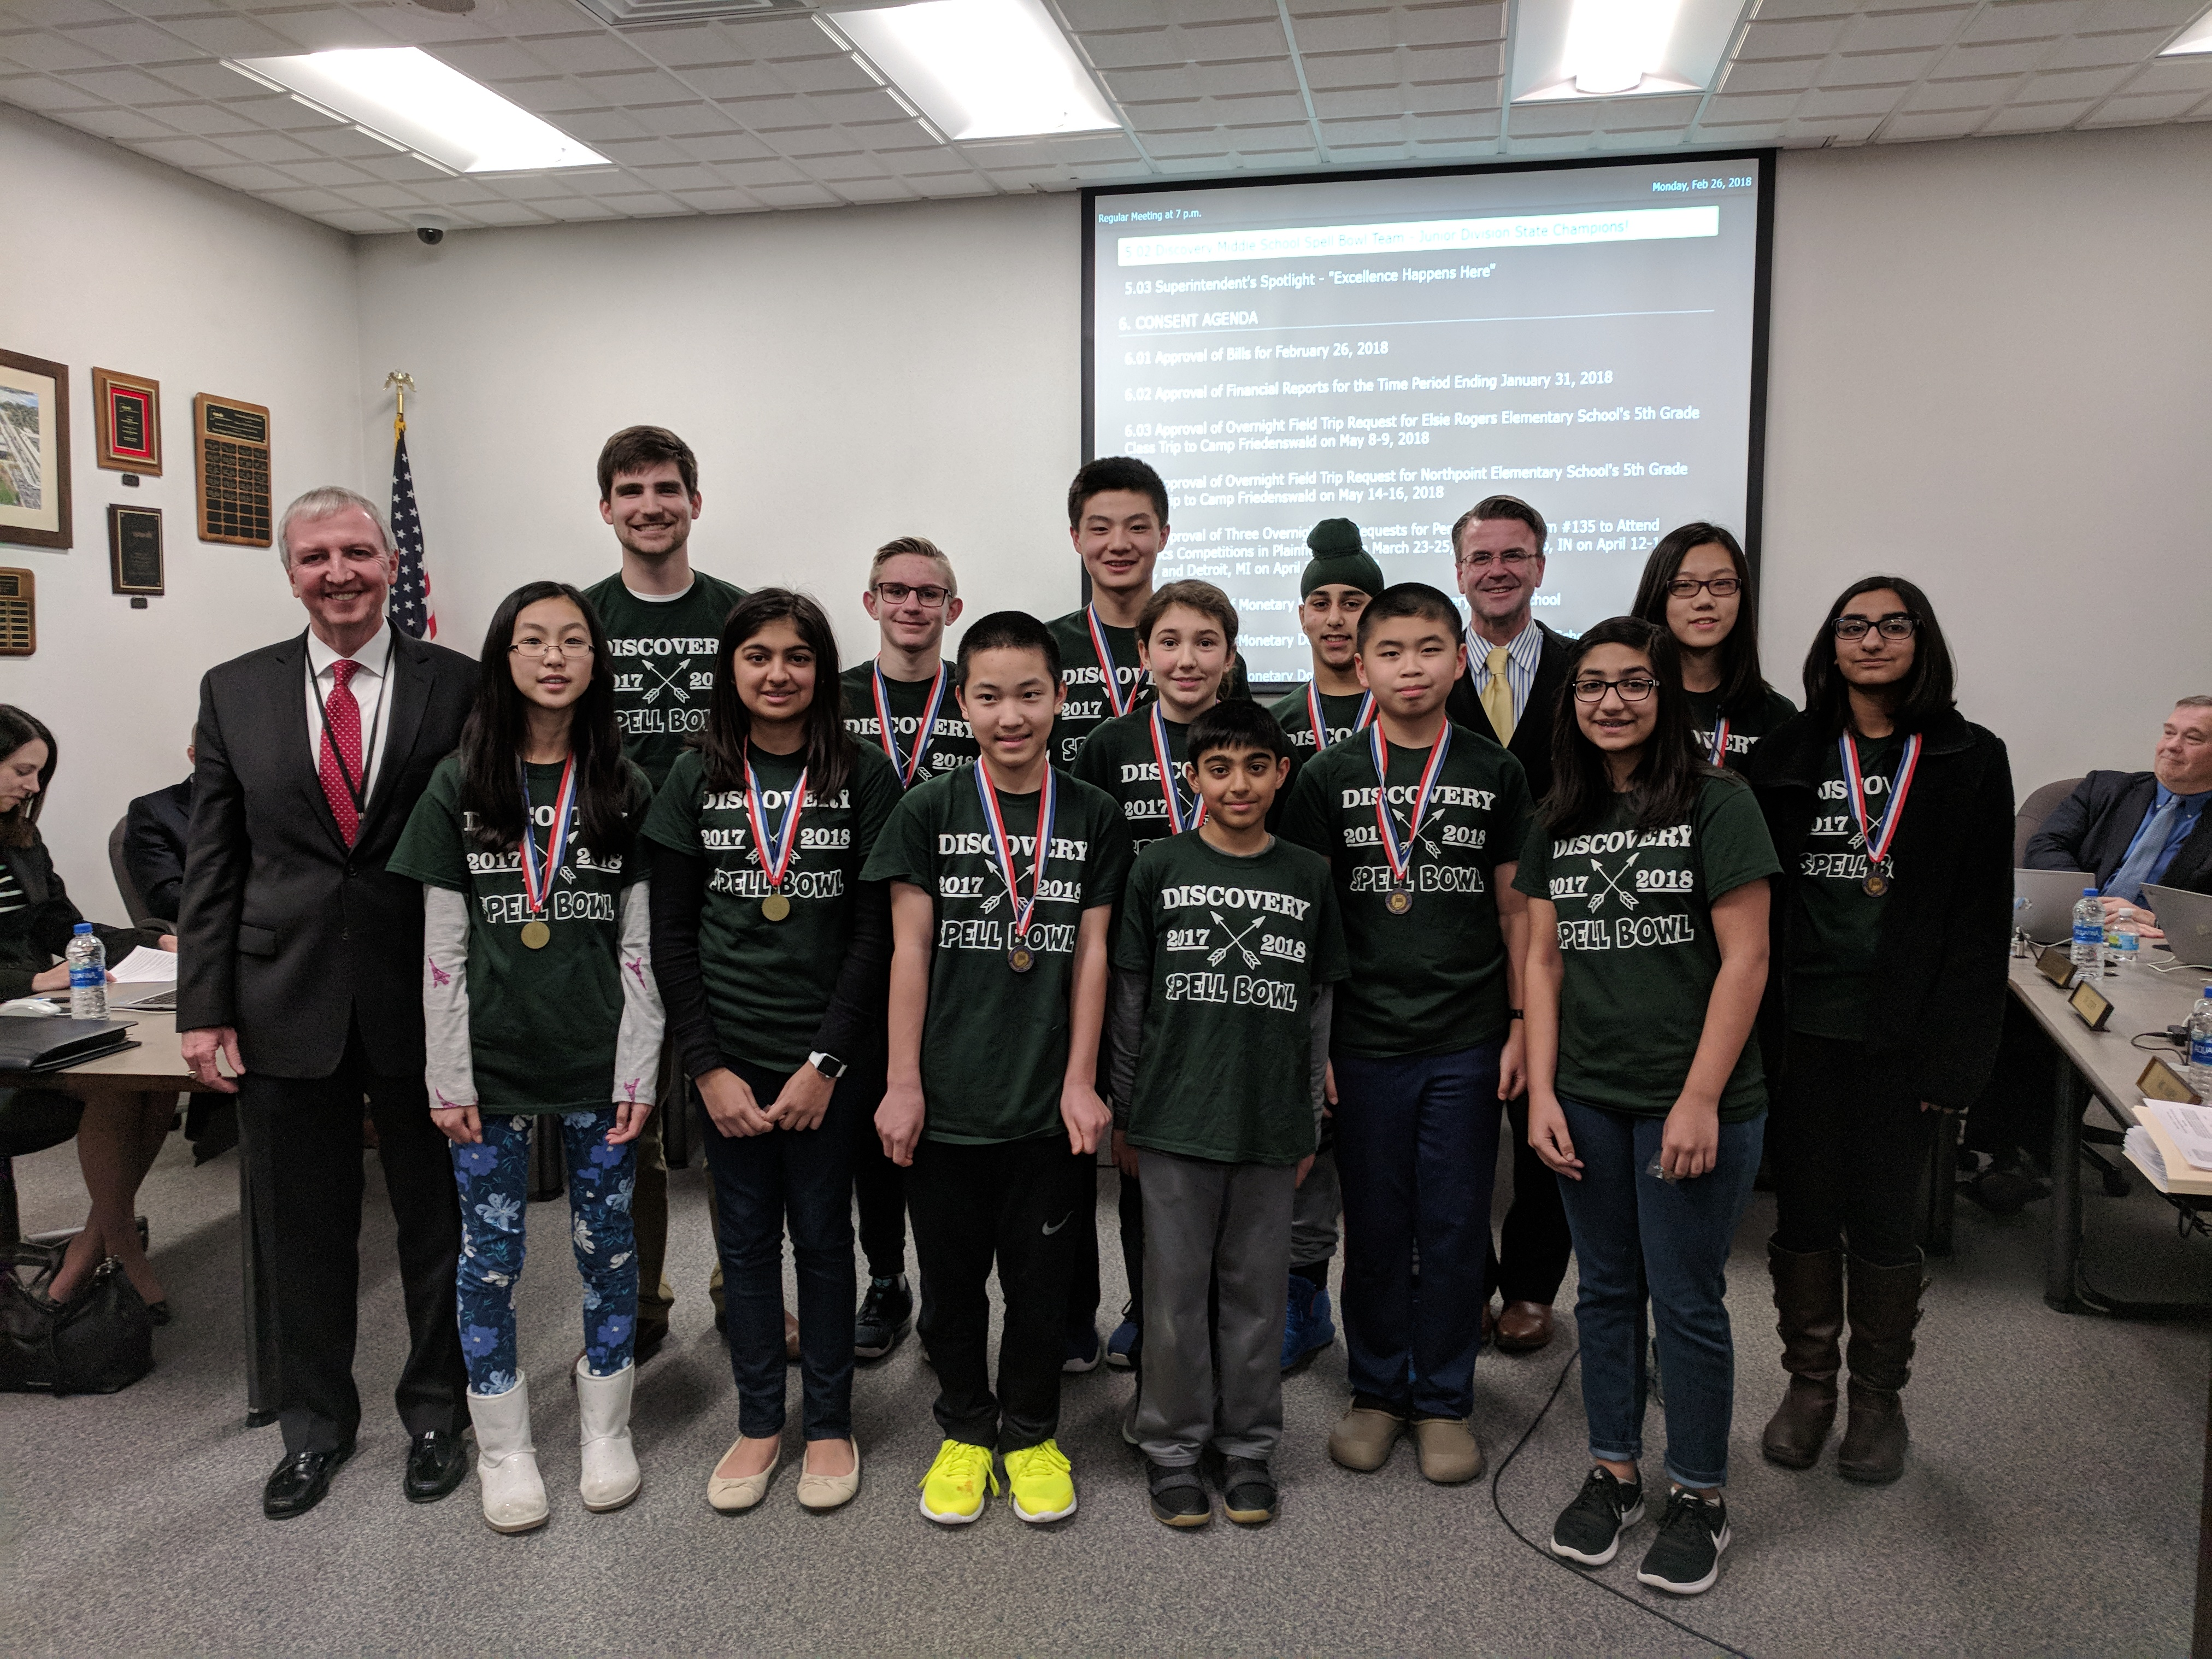 1st place Discovery Spell Bowl Team recognized at the Feb. 26 Board Meeting